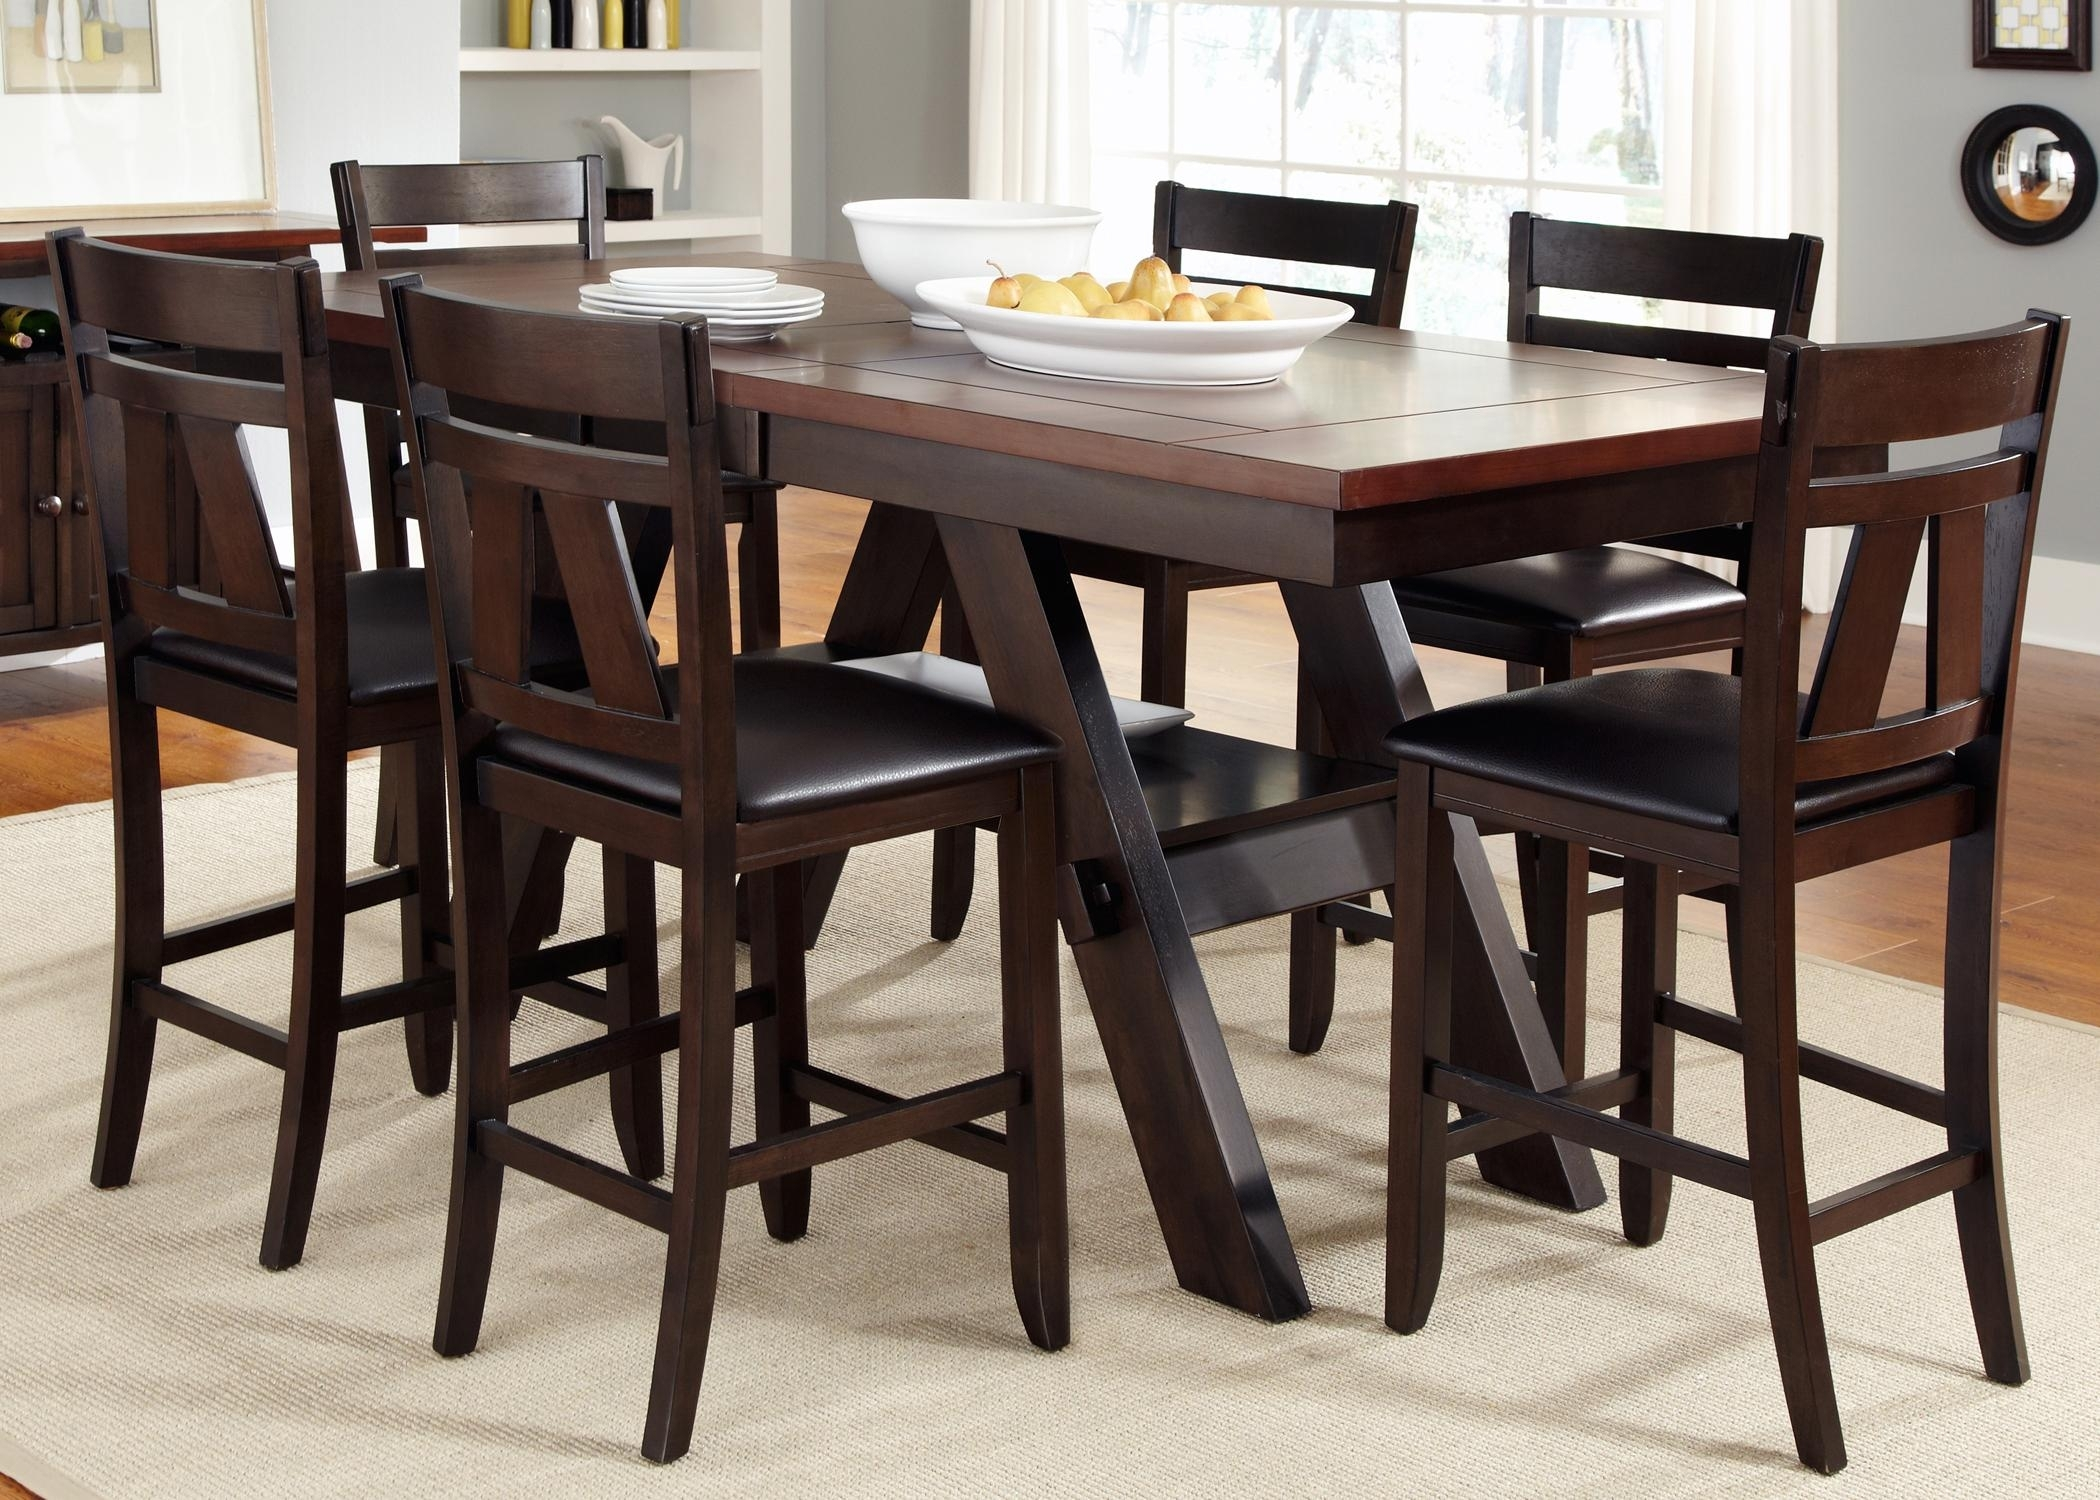 7 Piece Trestle Gathering Table With Counter Height Chairs Set Intended For Most Recently Released Parquet 7 Piece Dining Sets (View 17 of 20)